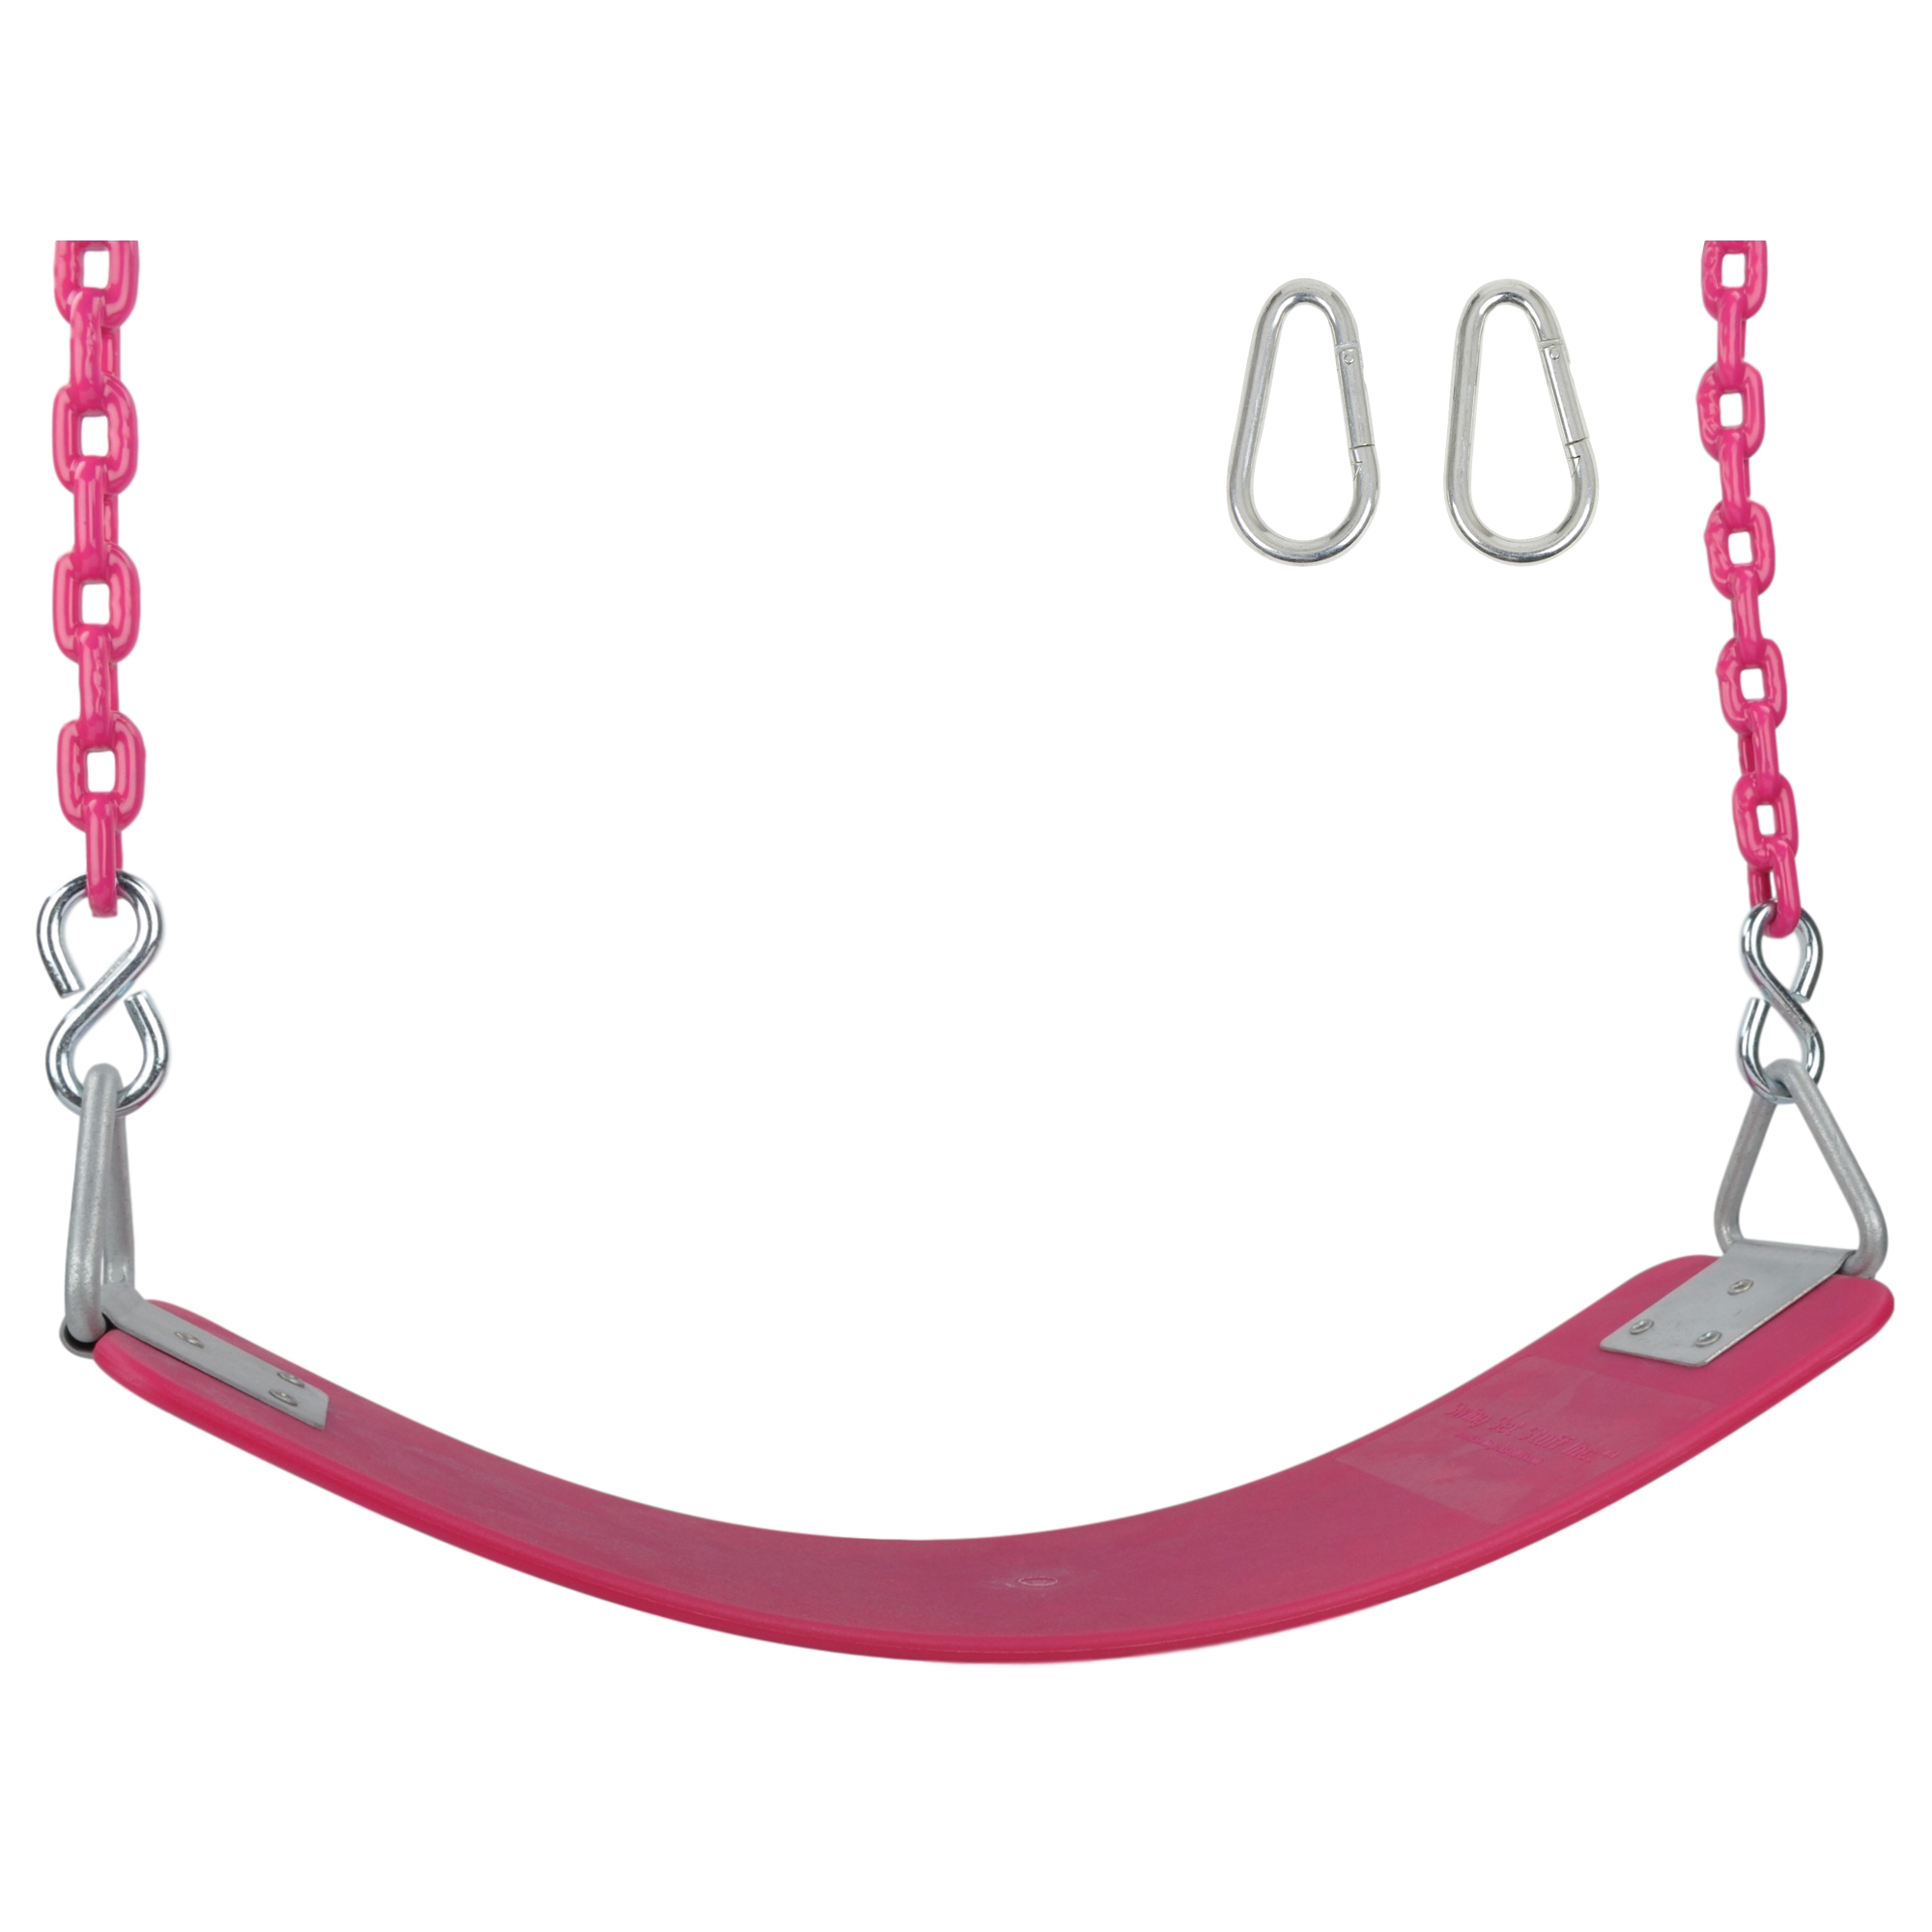 Swing Set Stuff Inc. Commercial Polymer Belt Seat with 5.5 Ft. Coated Chain (Pink)